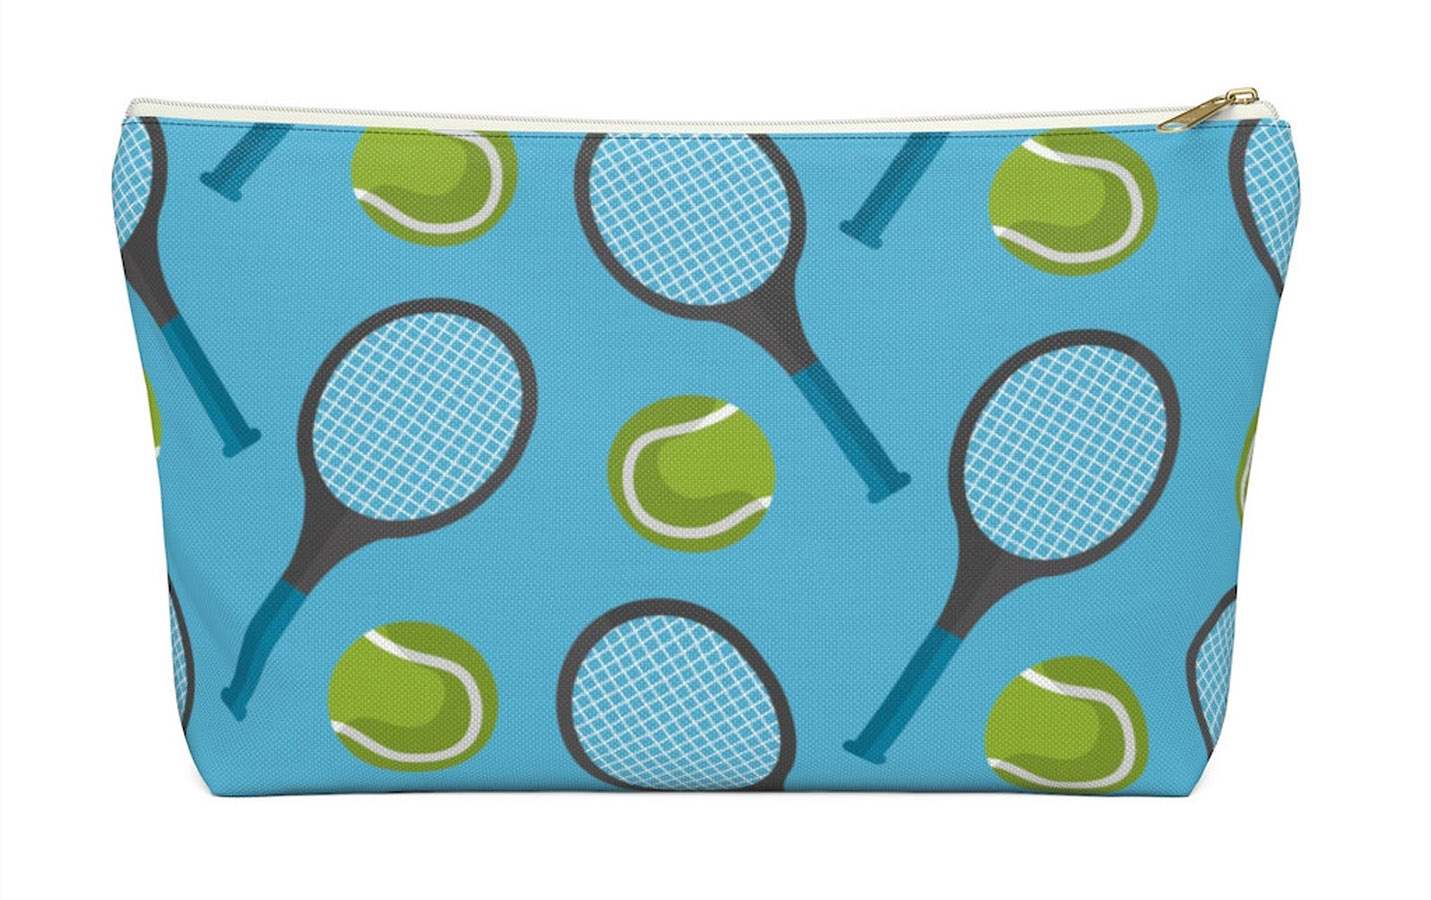 Tennis Accessory Pouch